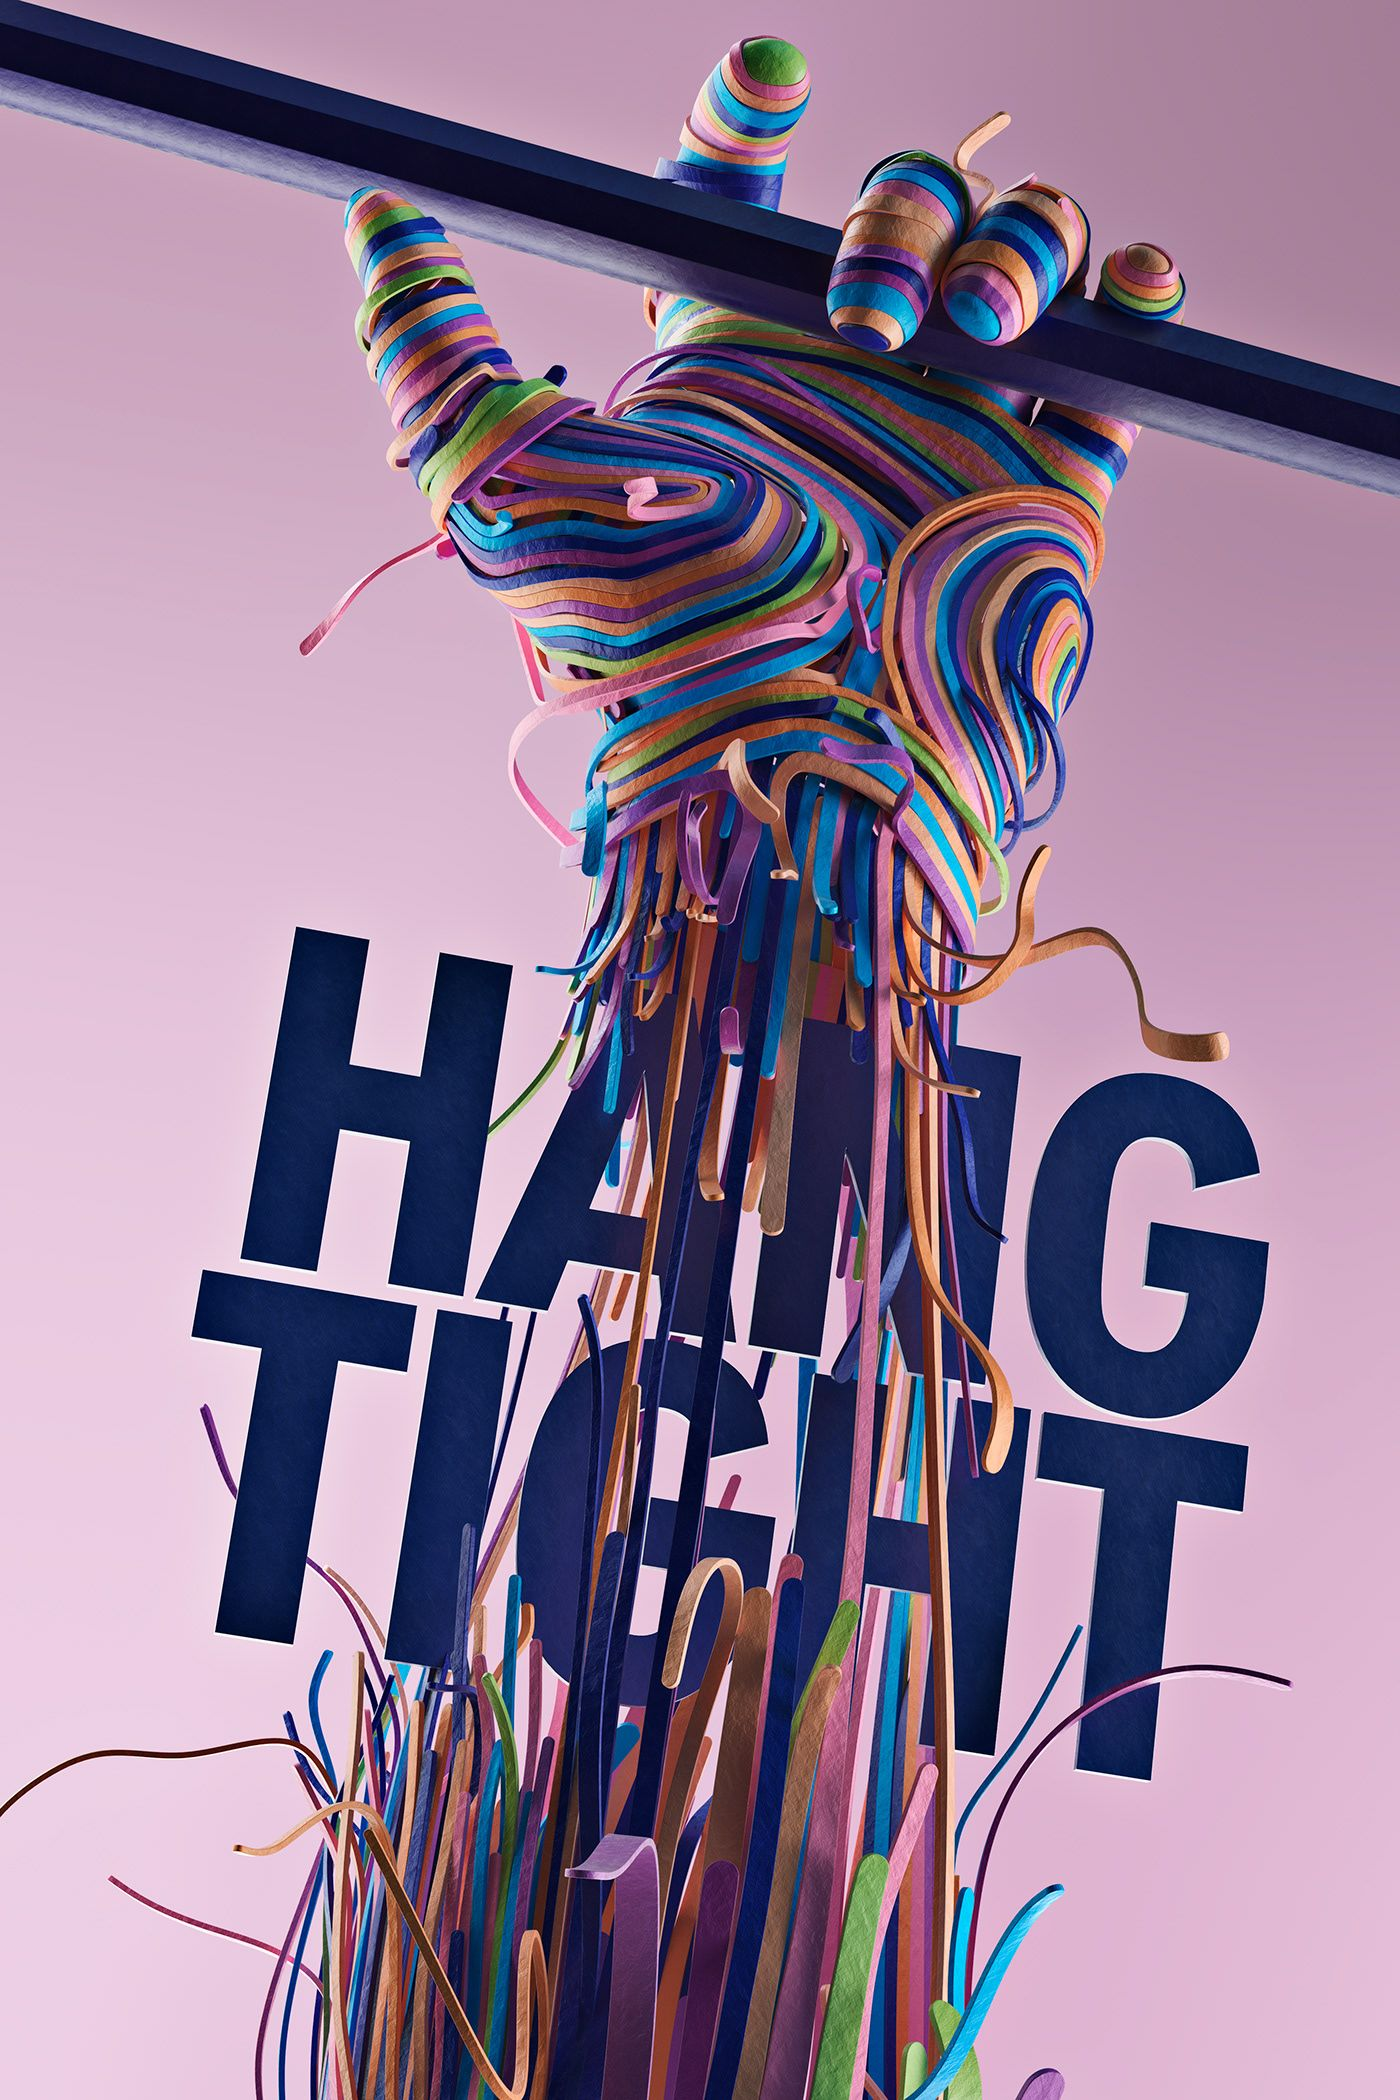 Hang Tight on Behance (With images) Graphic design